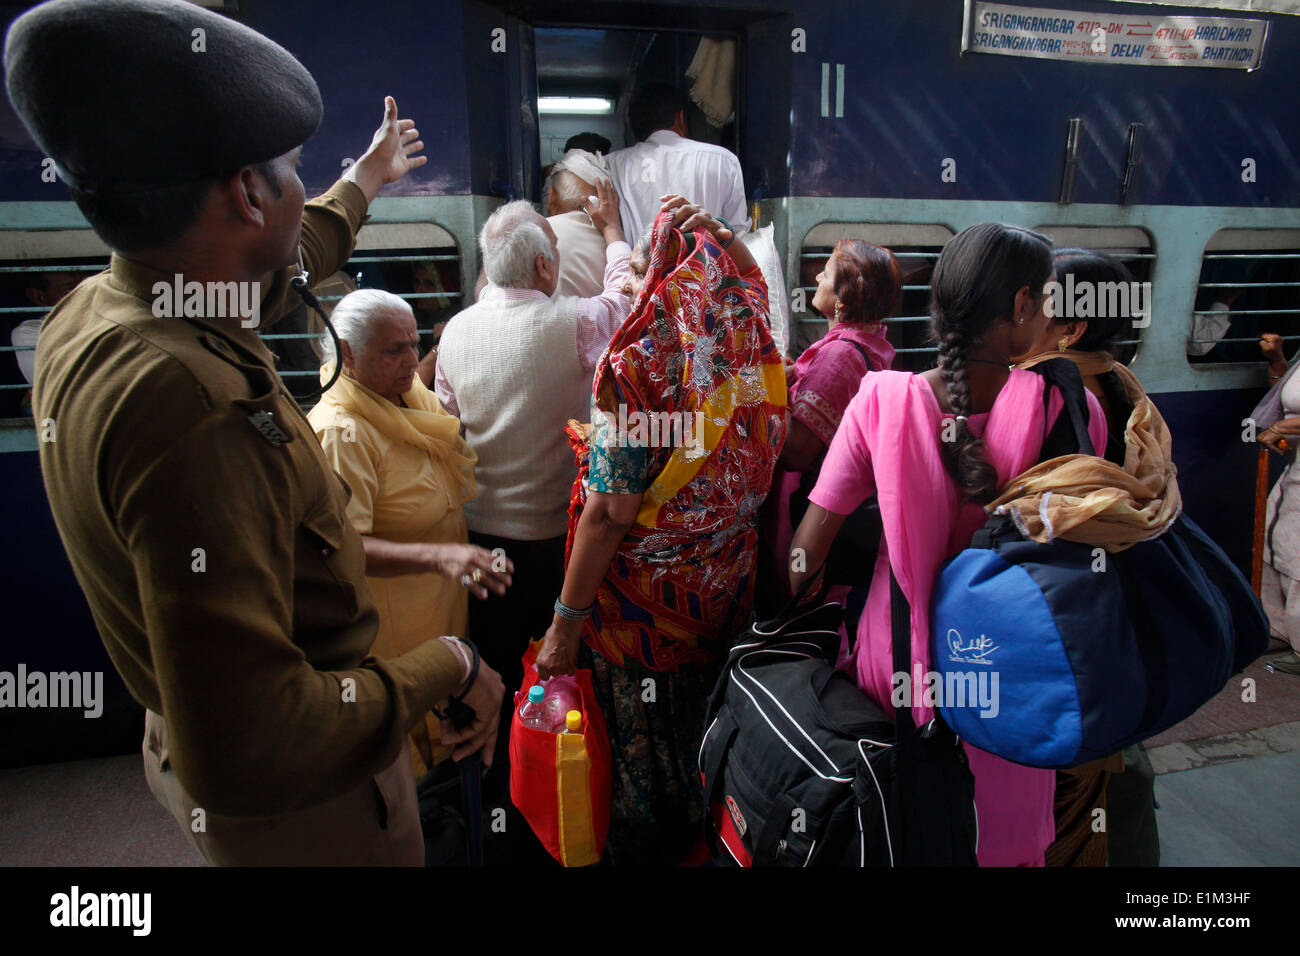 Passengers boarding a train during the Kumbh Mela in Hardwar - Stock Image